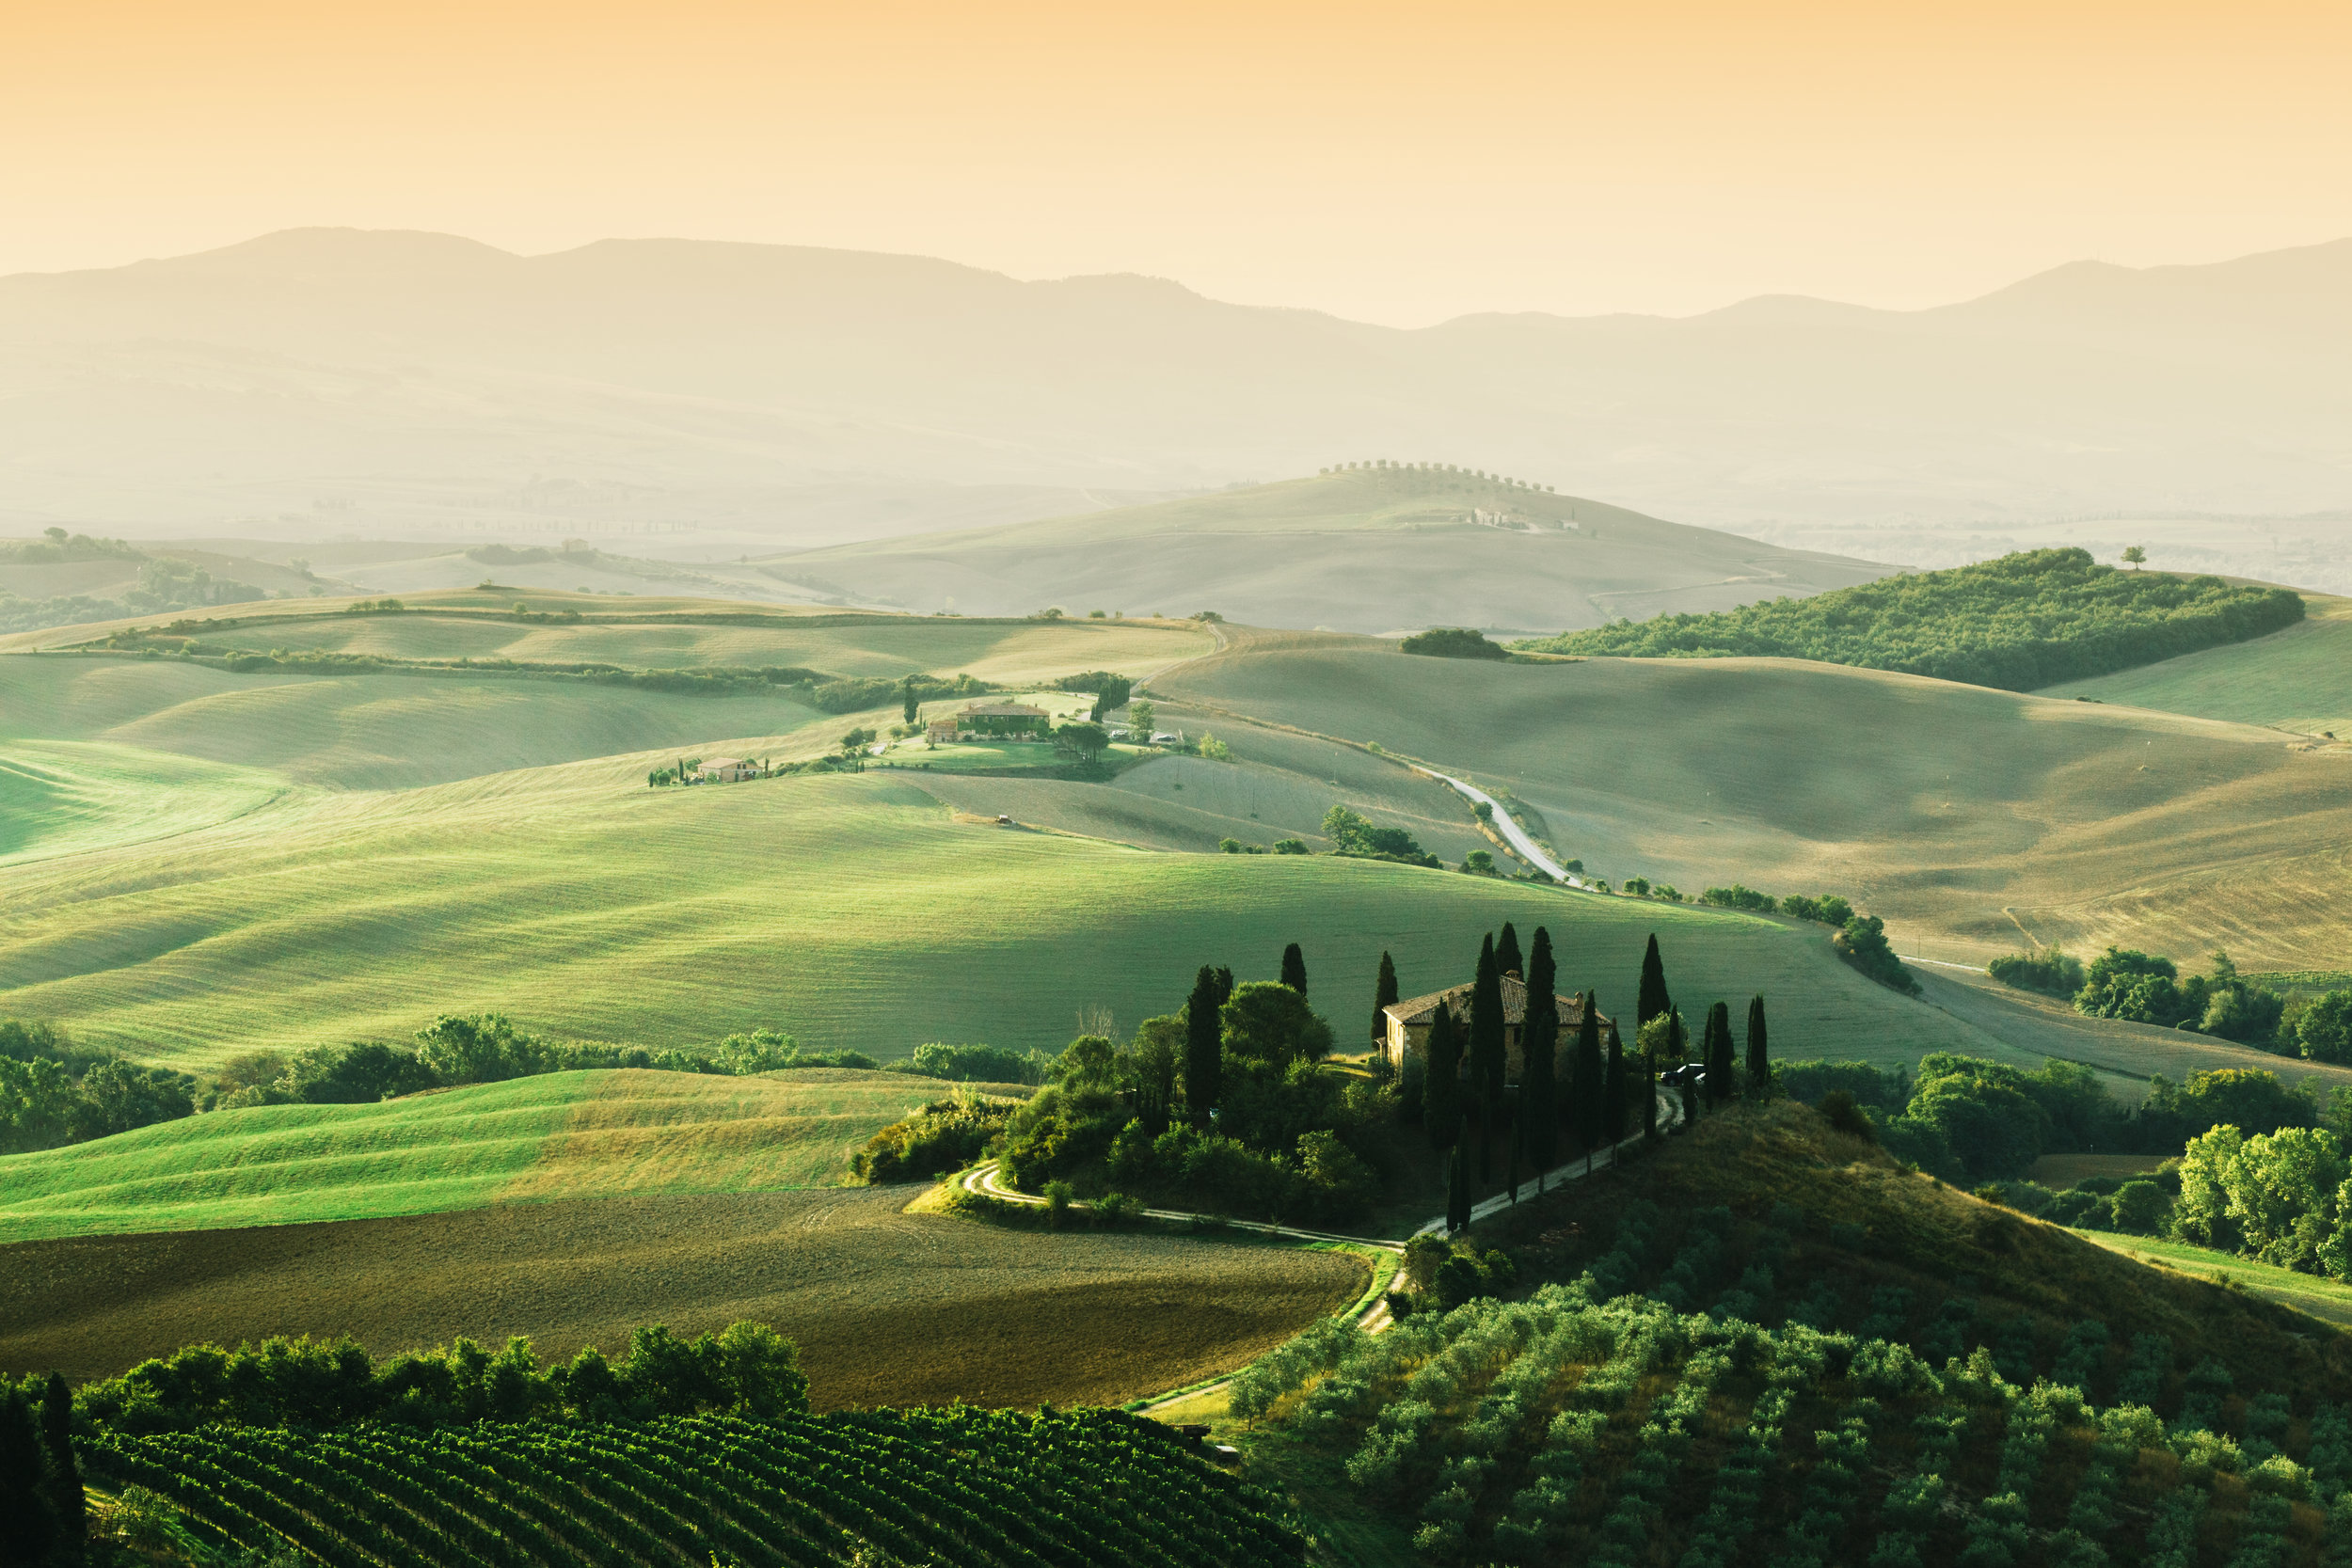 tuscany-landscape-at-sunrise-tuscan-farm-house-PLBXJ67.jpg